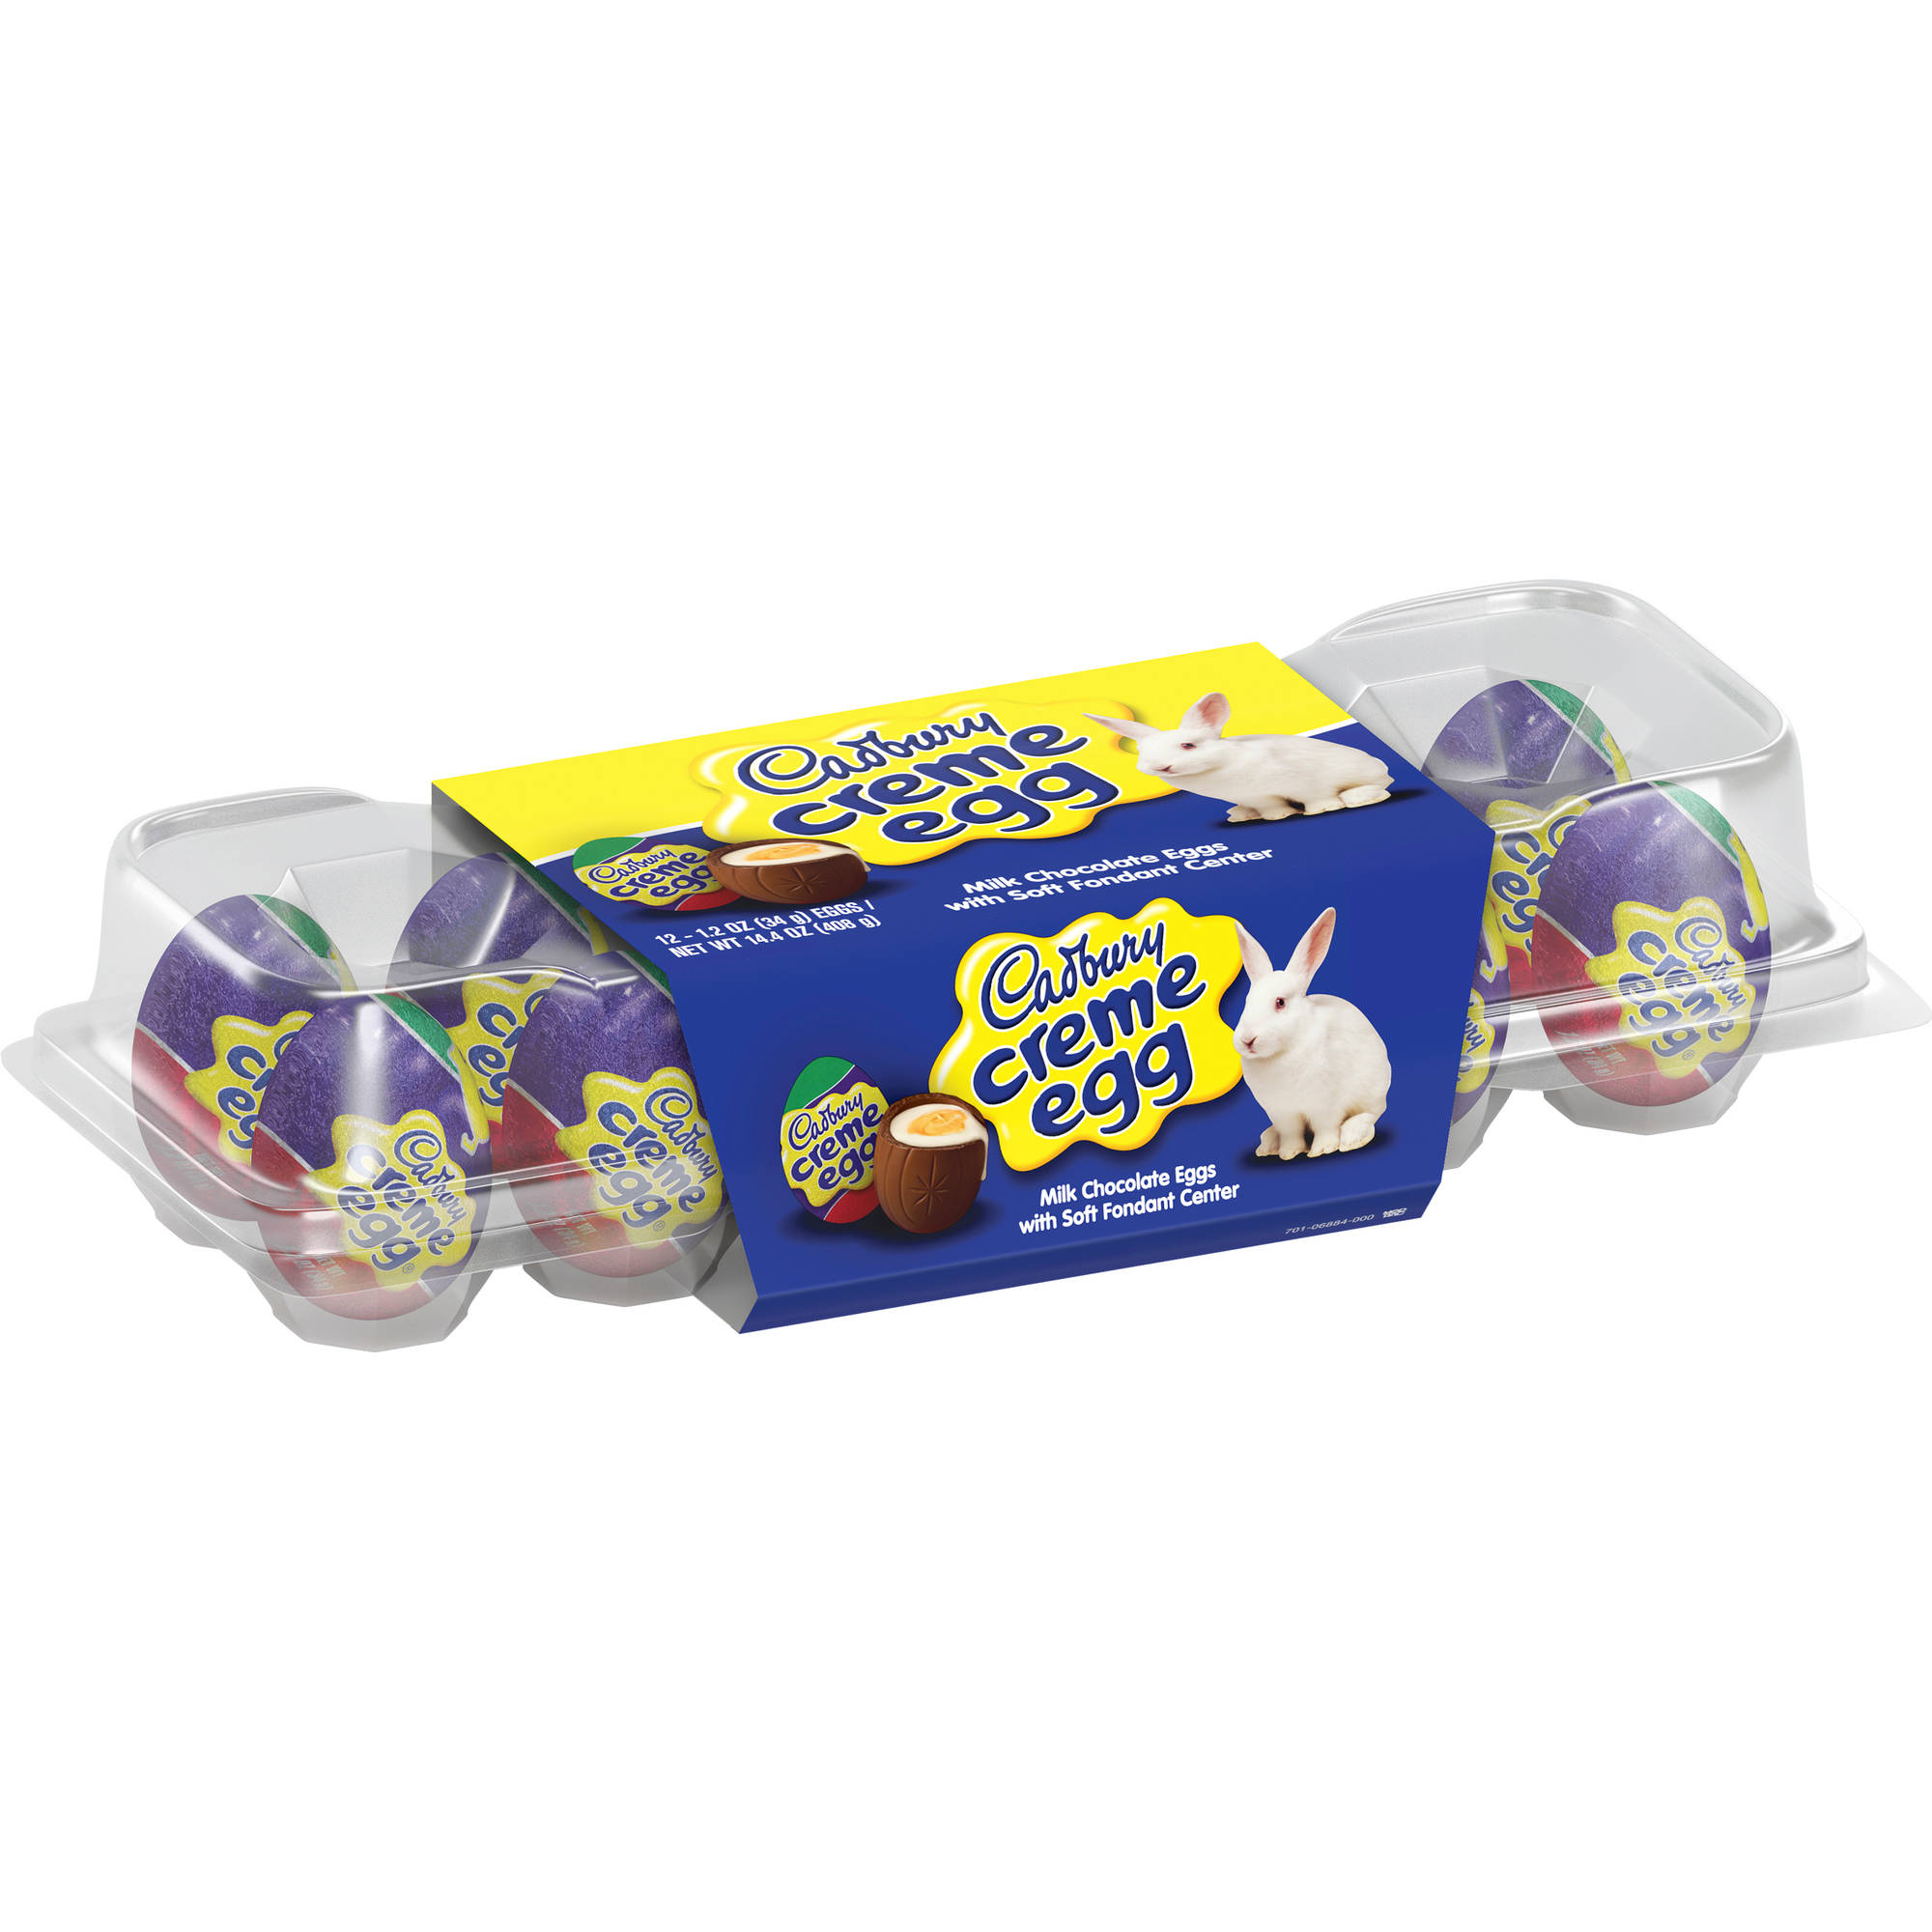 Cadbury Ceme Eggs, Easter Milk Chocolate Creme Filled Eggs, 1.2 Oz, 12 Ct